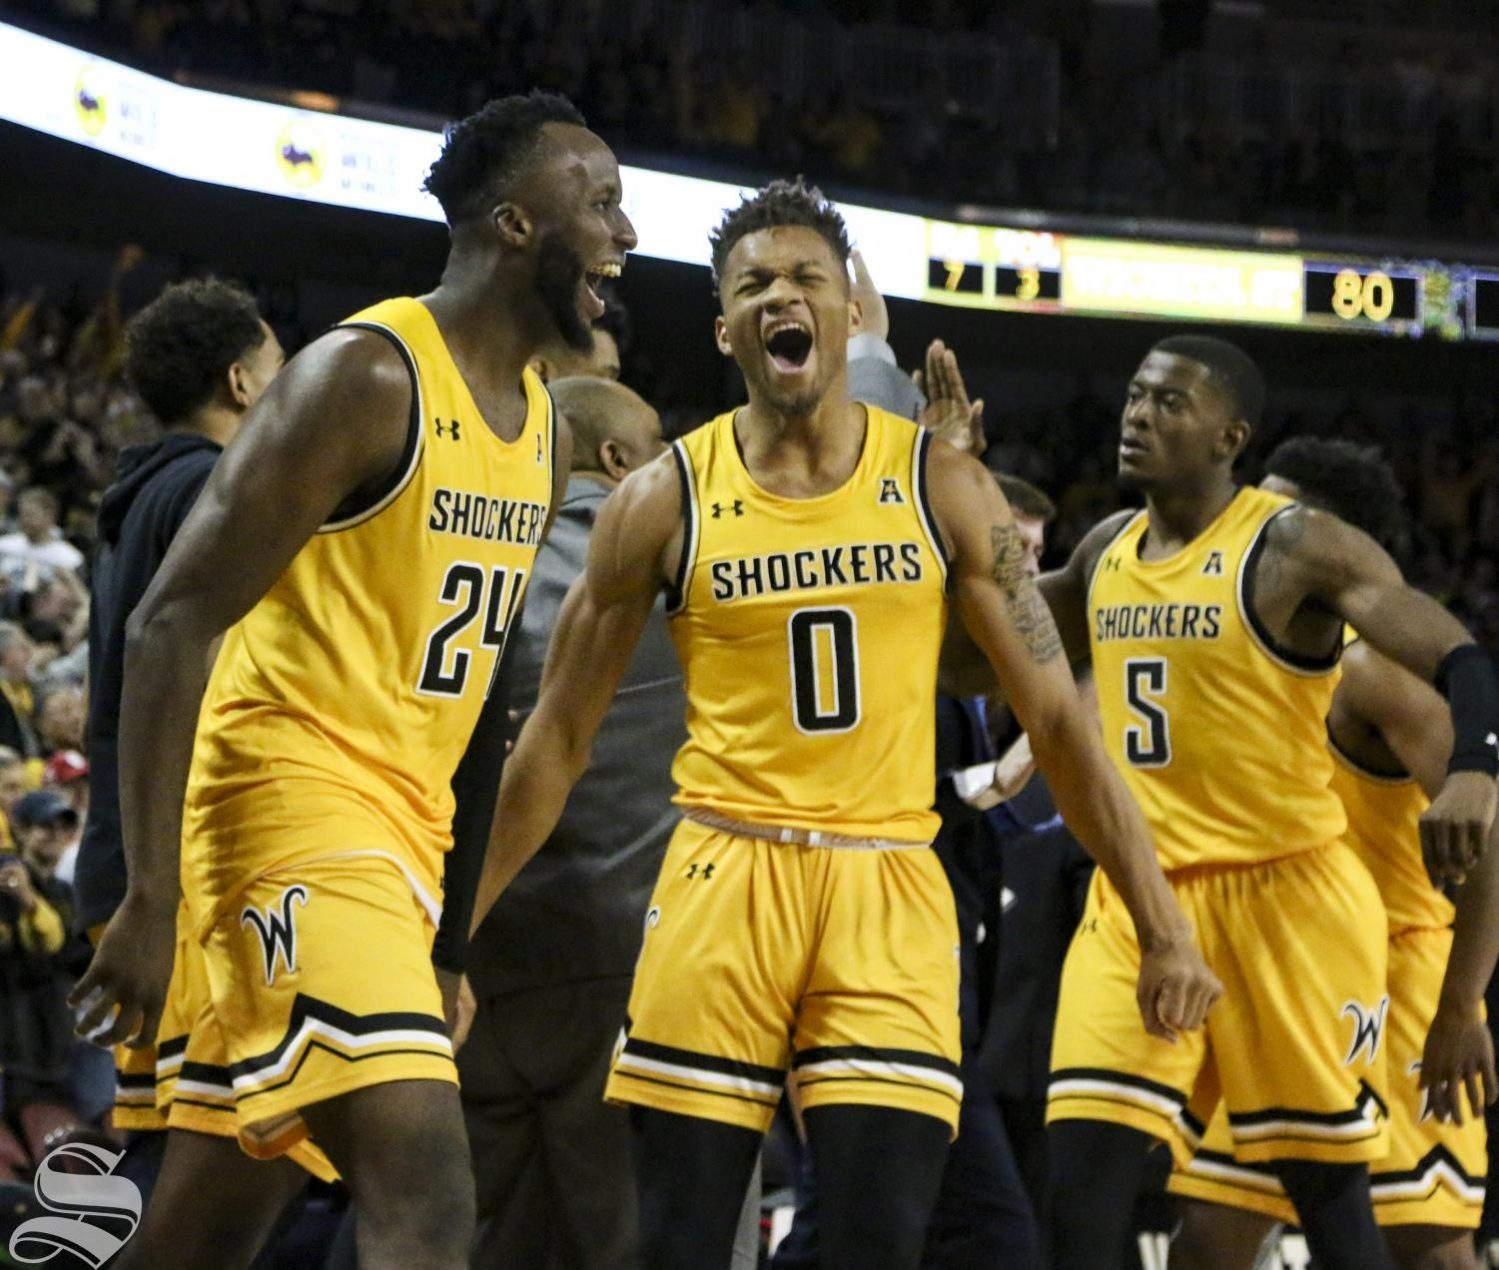 Shockers celebrate after winning against Oklahoma at Intrust Bank Arena on Saturday, Dec. 14, 2019.